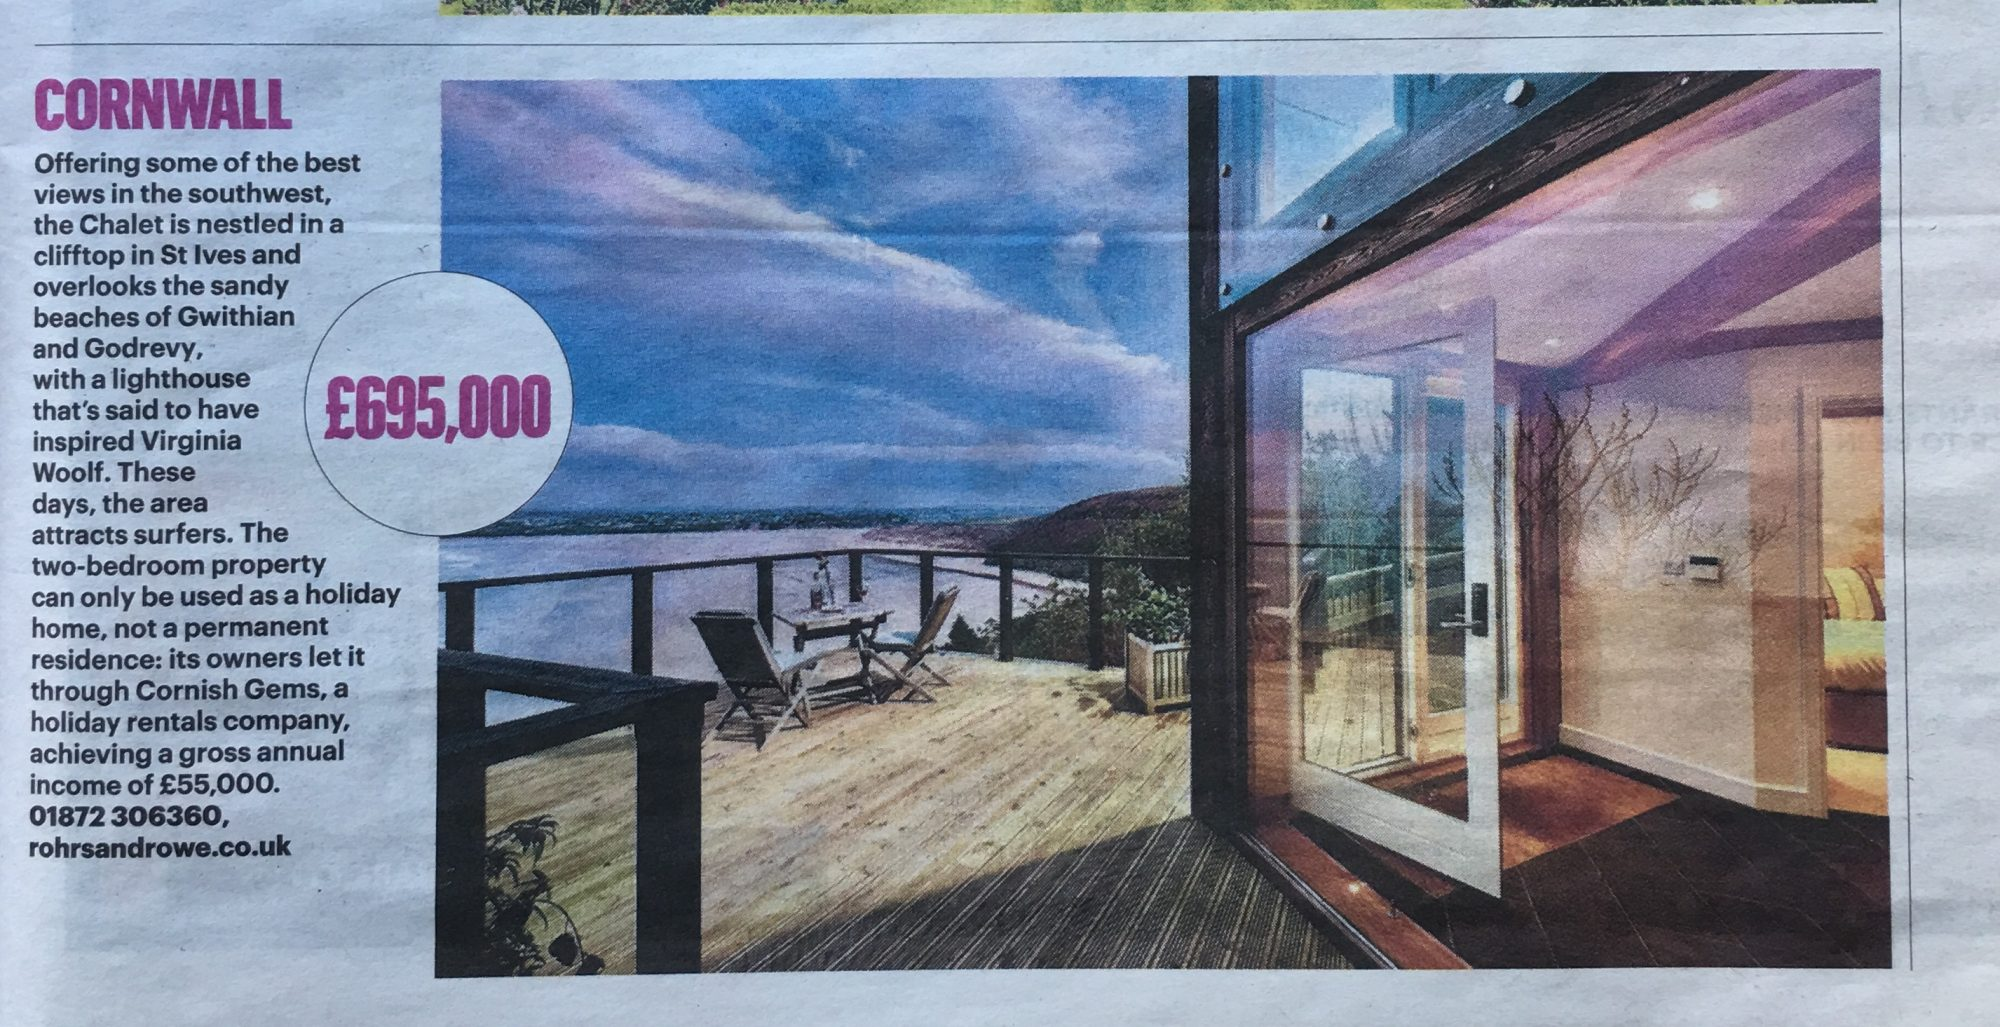 The Chalet - Carbis Bay